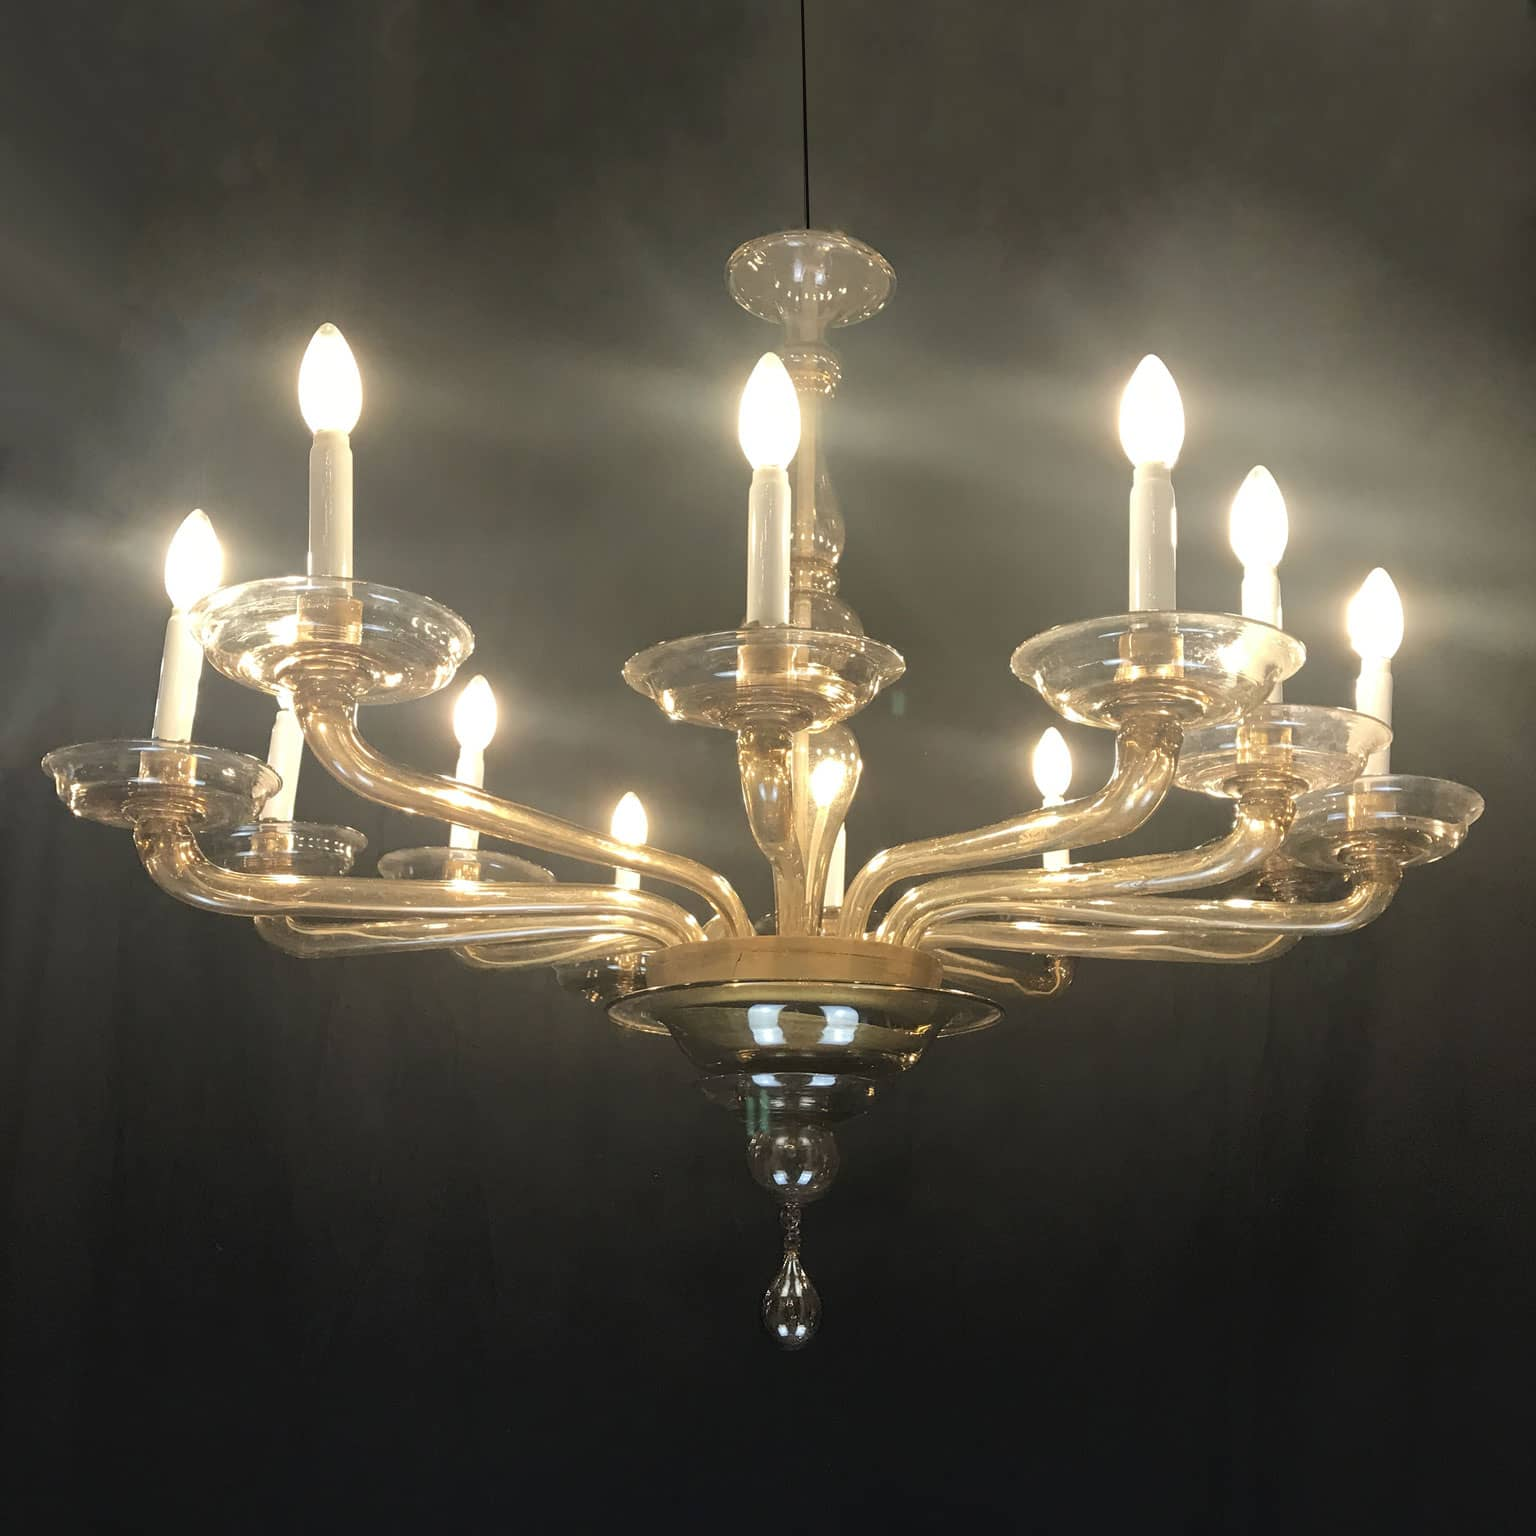 Antique Murano Glass Chandelier by Cristalleria Murano Giuseppe Toso 1940  circa - Antique Murano Glass Chandelier By Cristalleria Murano Giuseppe Toso